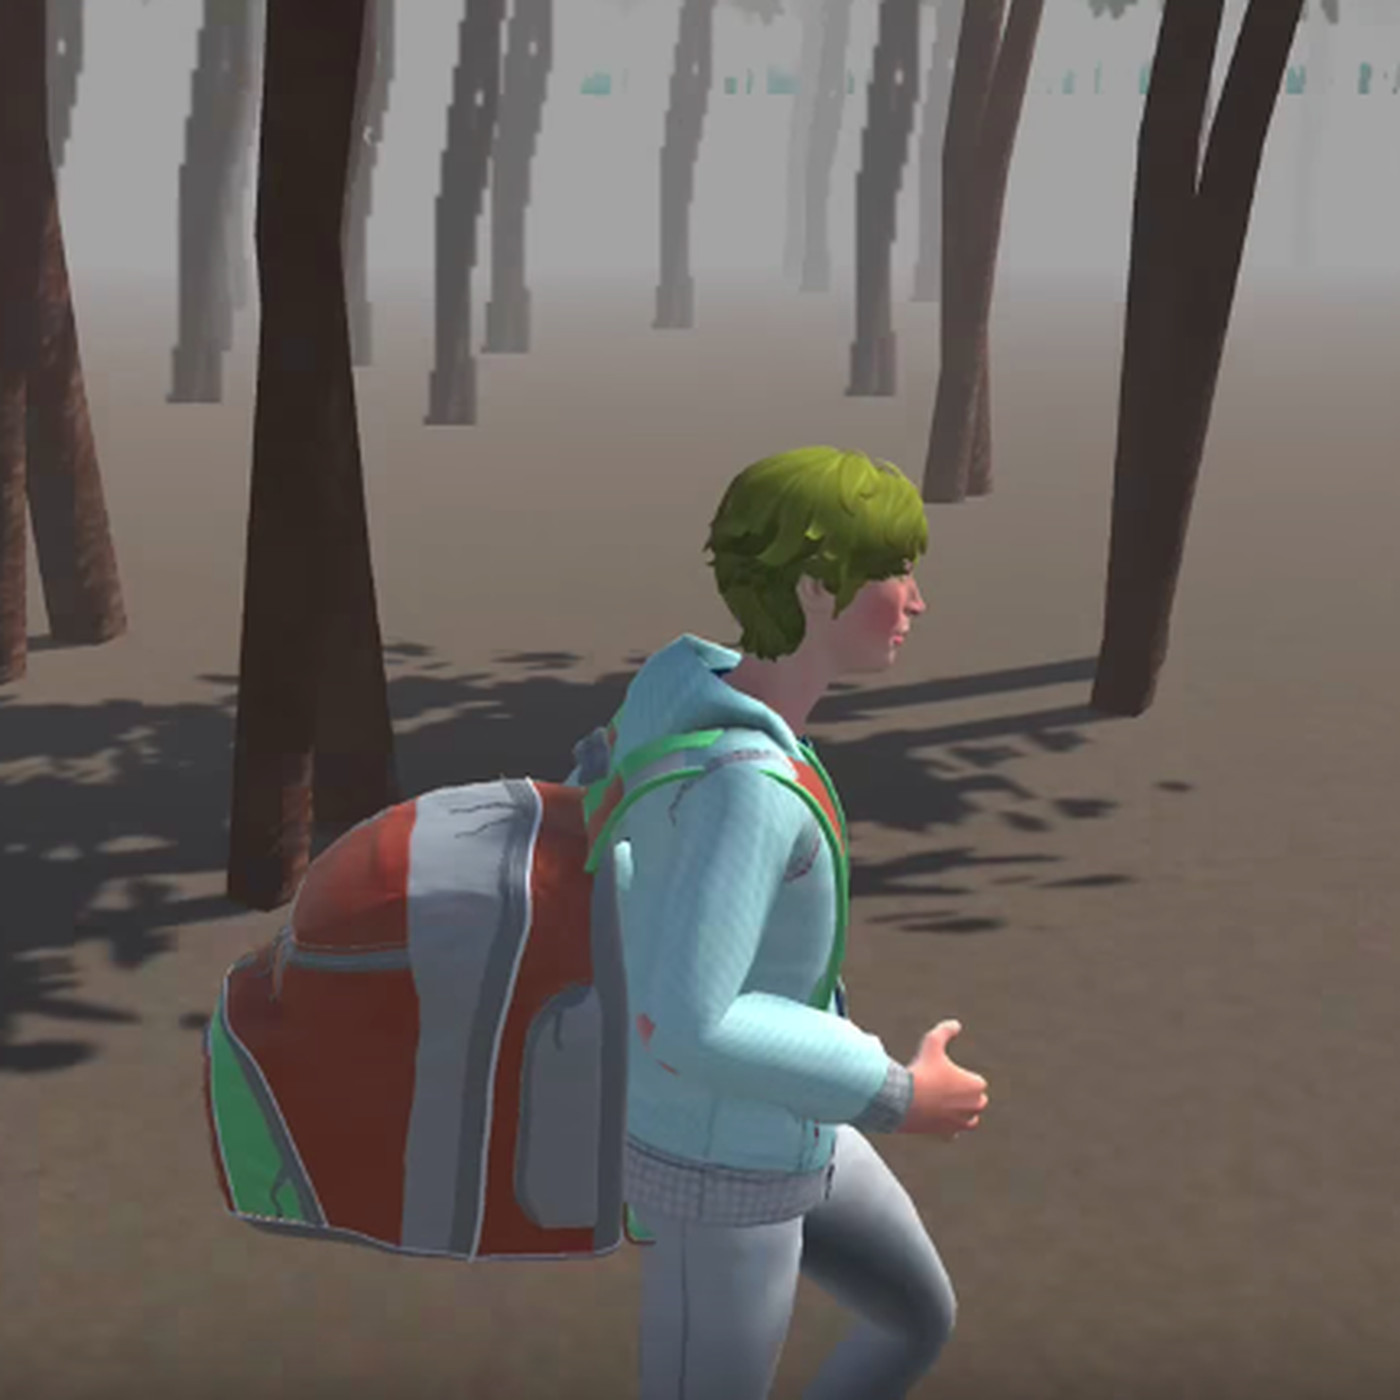 Logan Paul Inspired Suicide Forest Game To Be Removed From Xbox